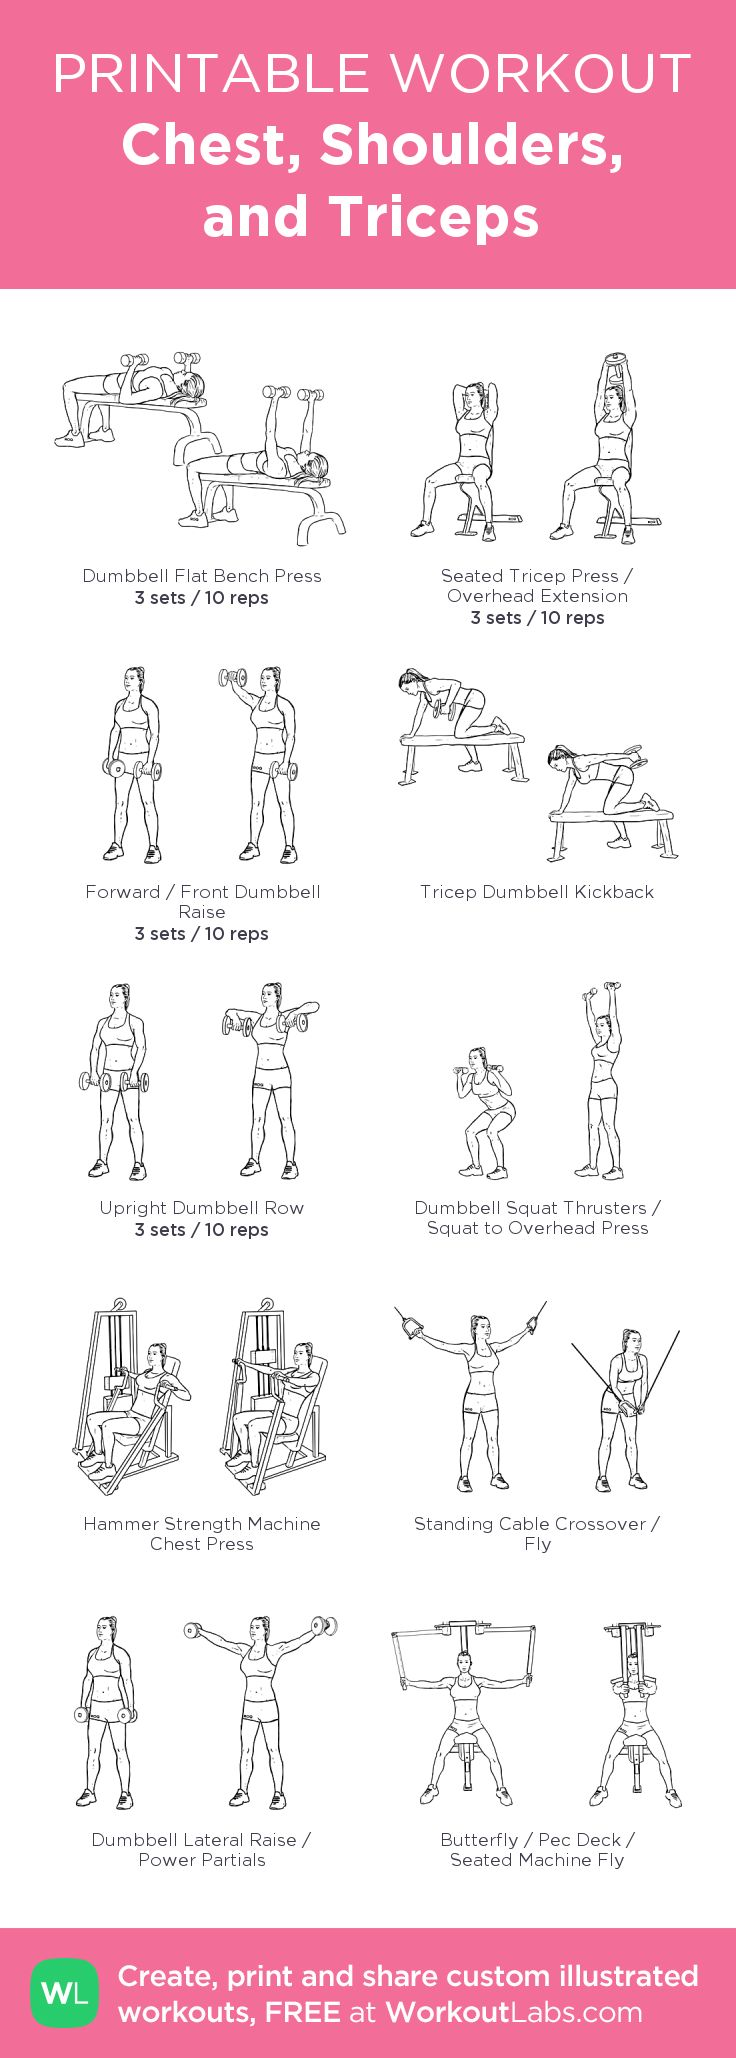 Chest, Shoulders, and Triceps: my visual workout created at WorkoutLabs.com • Click through to customize and download as a FREE PDF! #customworkout